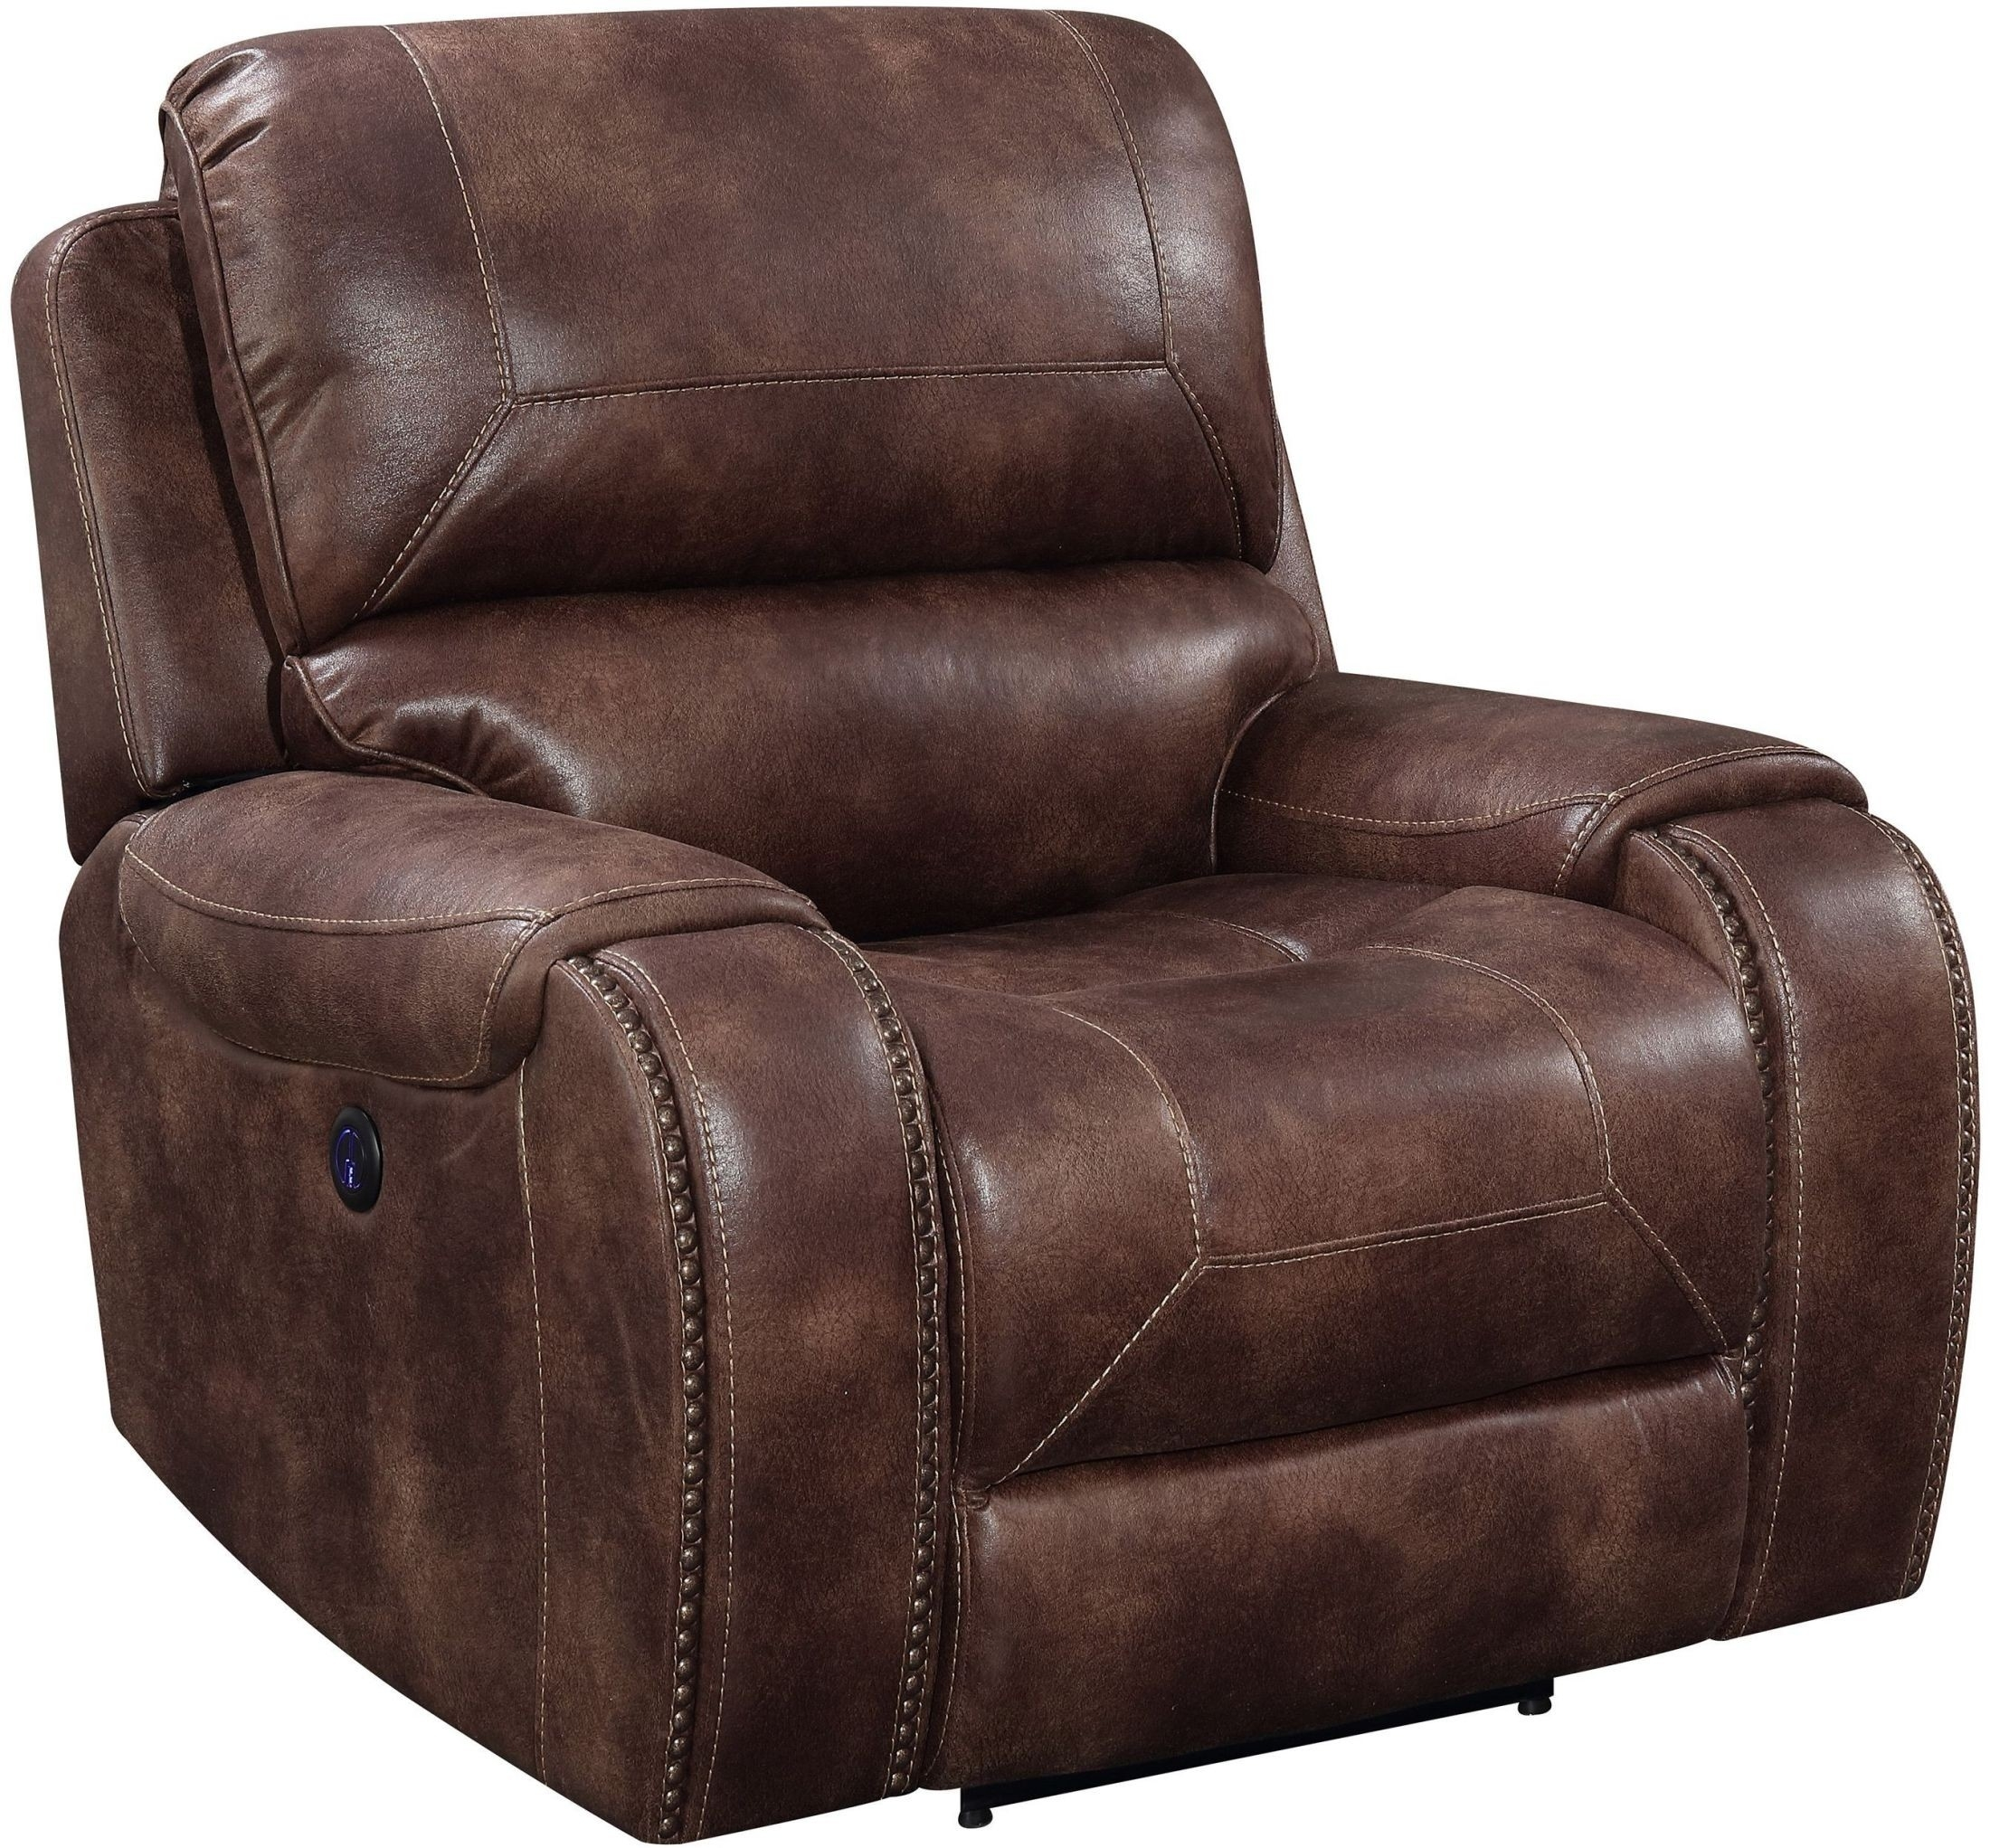 Jennings Waylon Mocha Power Recliner From Prime Resource With Waylon 3 Piece Power Reclining Sectionals (View 19 of 25)